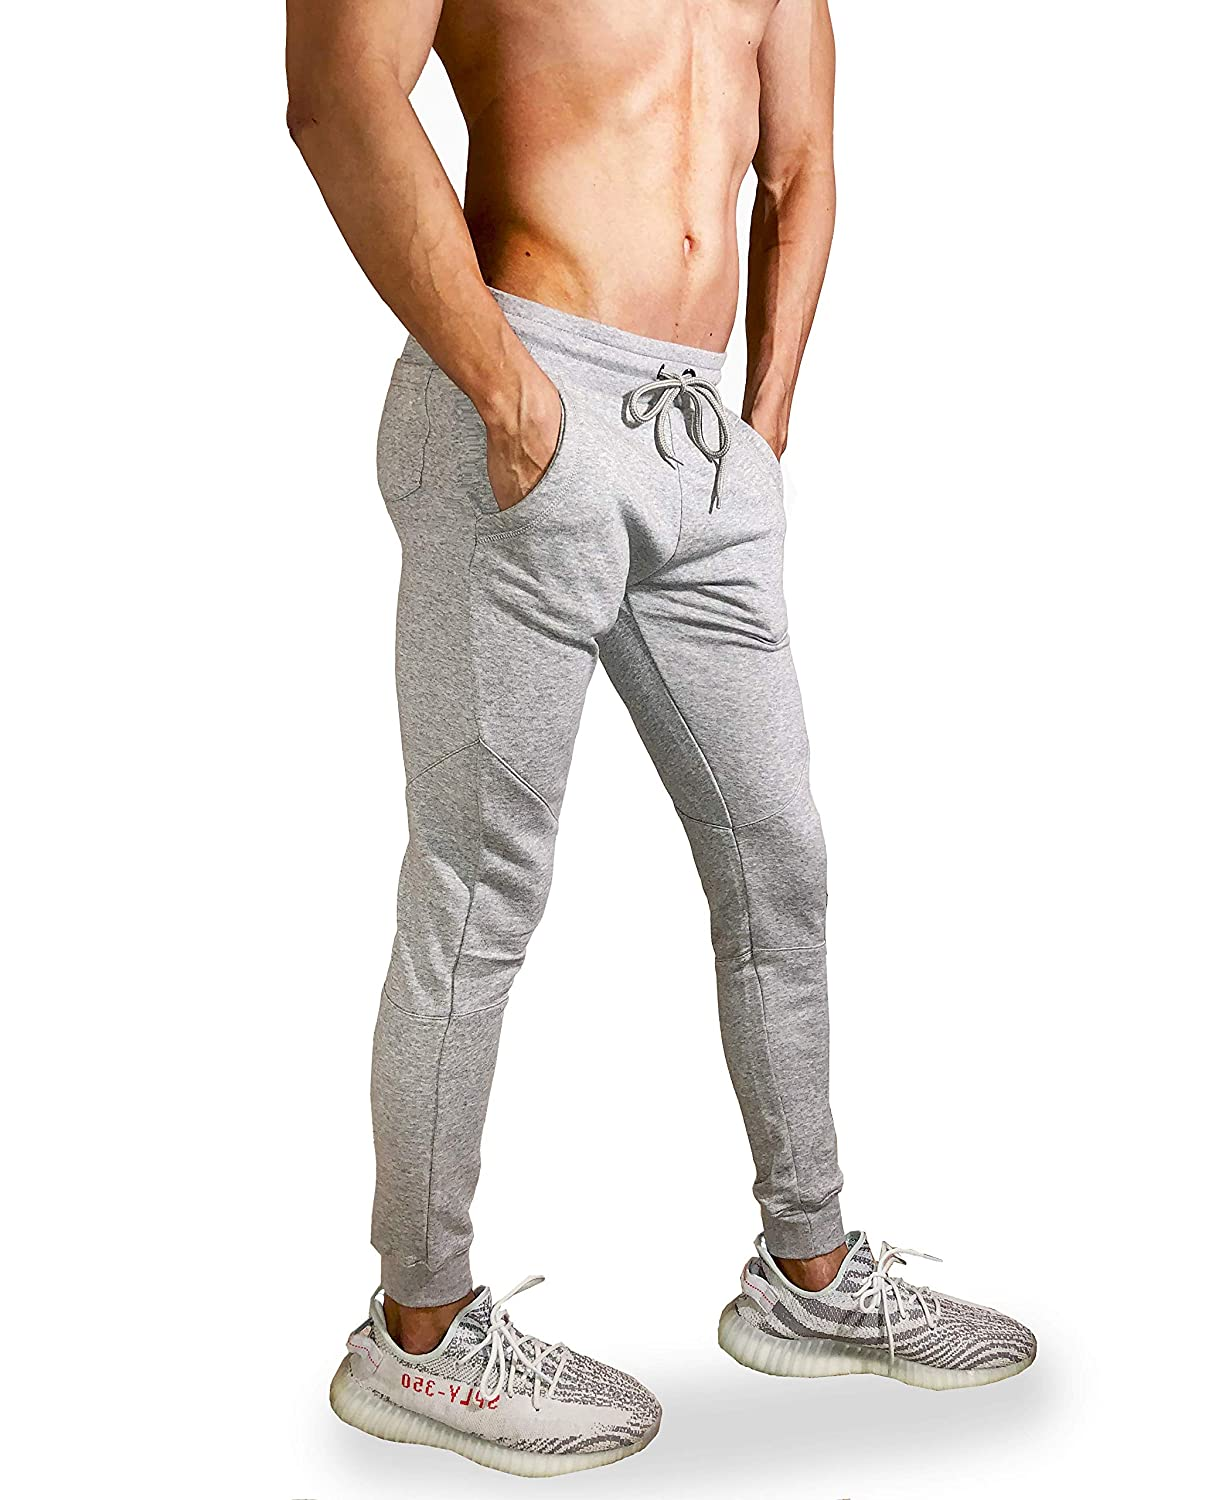 Flexlete Men's Slim Fit Joggers French Terry Sweatpants Track Fitted Active Sports Running Gym Workout Pants With Pockets by Flexlete